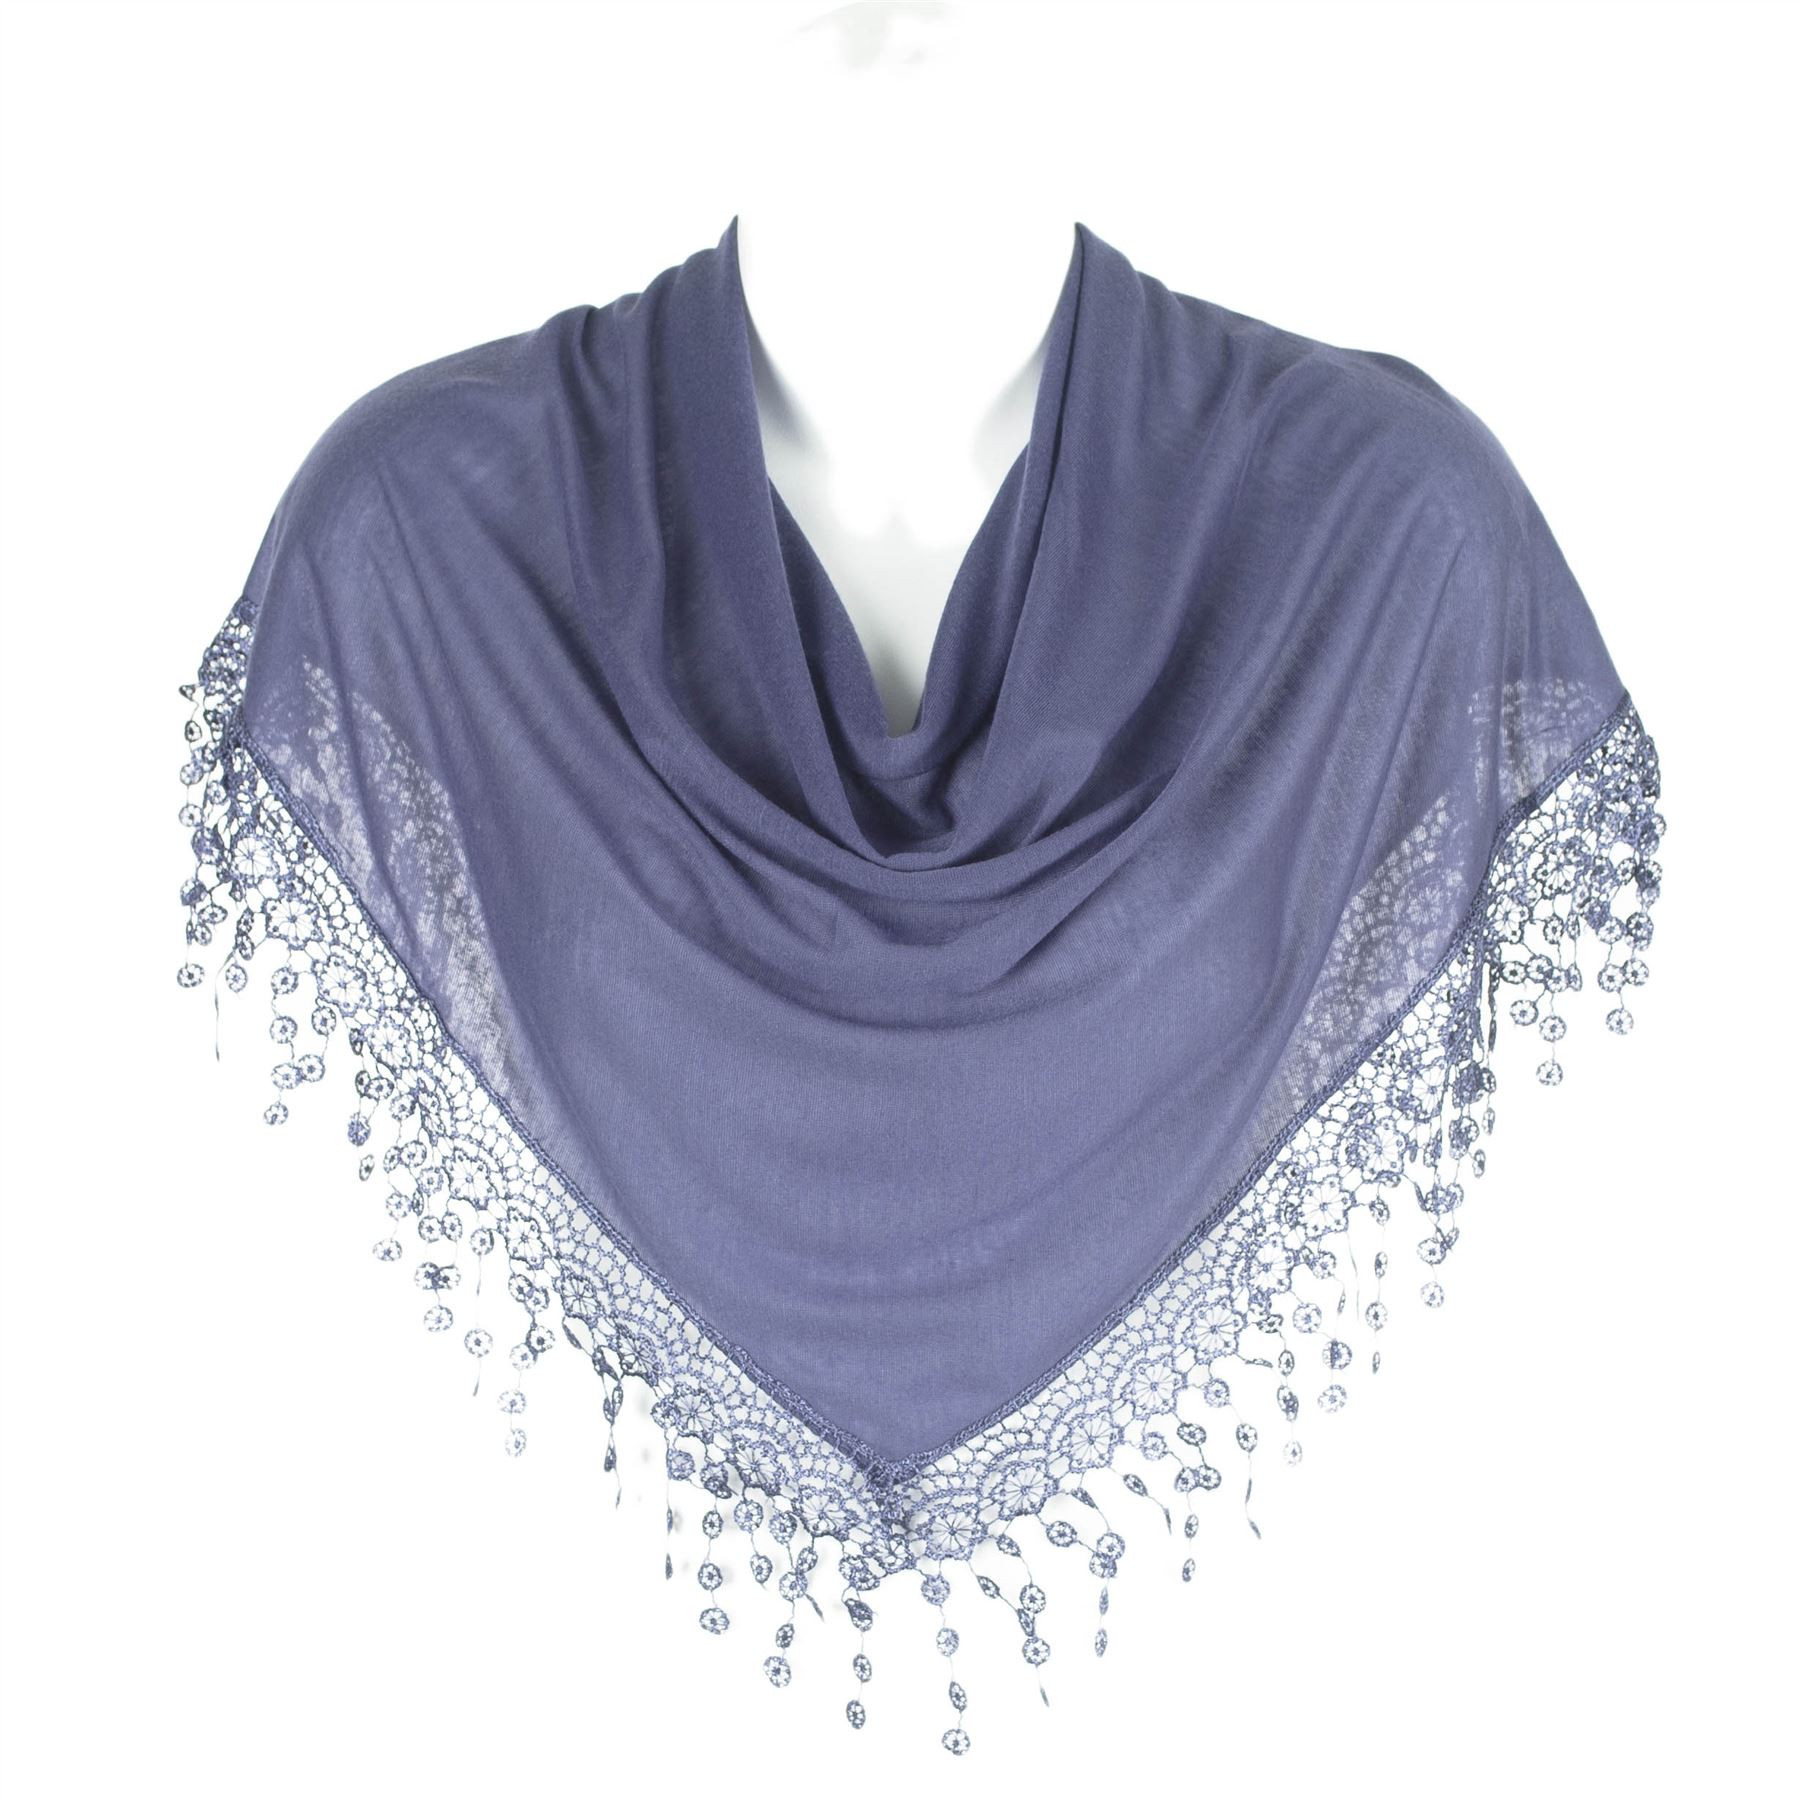 Lace Shawl Fresh Plain Women Lady Chandelier Lace Fringed Shawl Stole Wrap Of Top 45 Pictures Lace Shawl